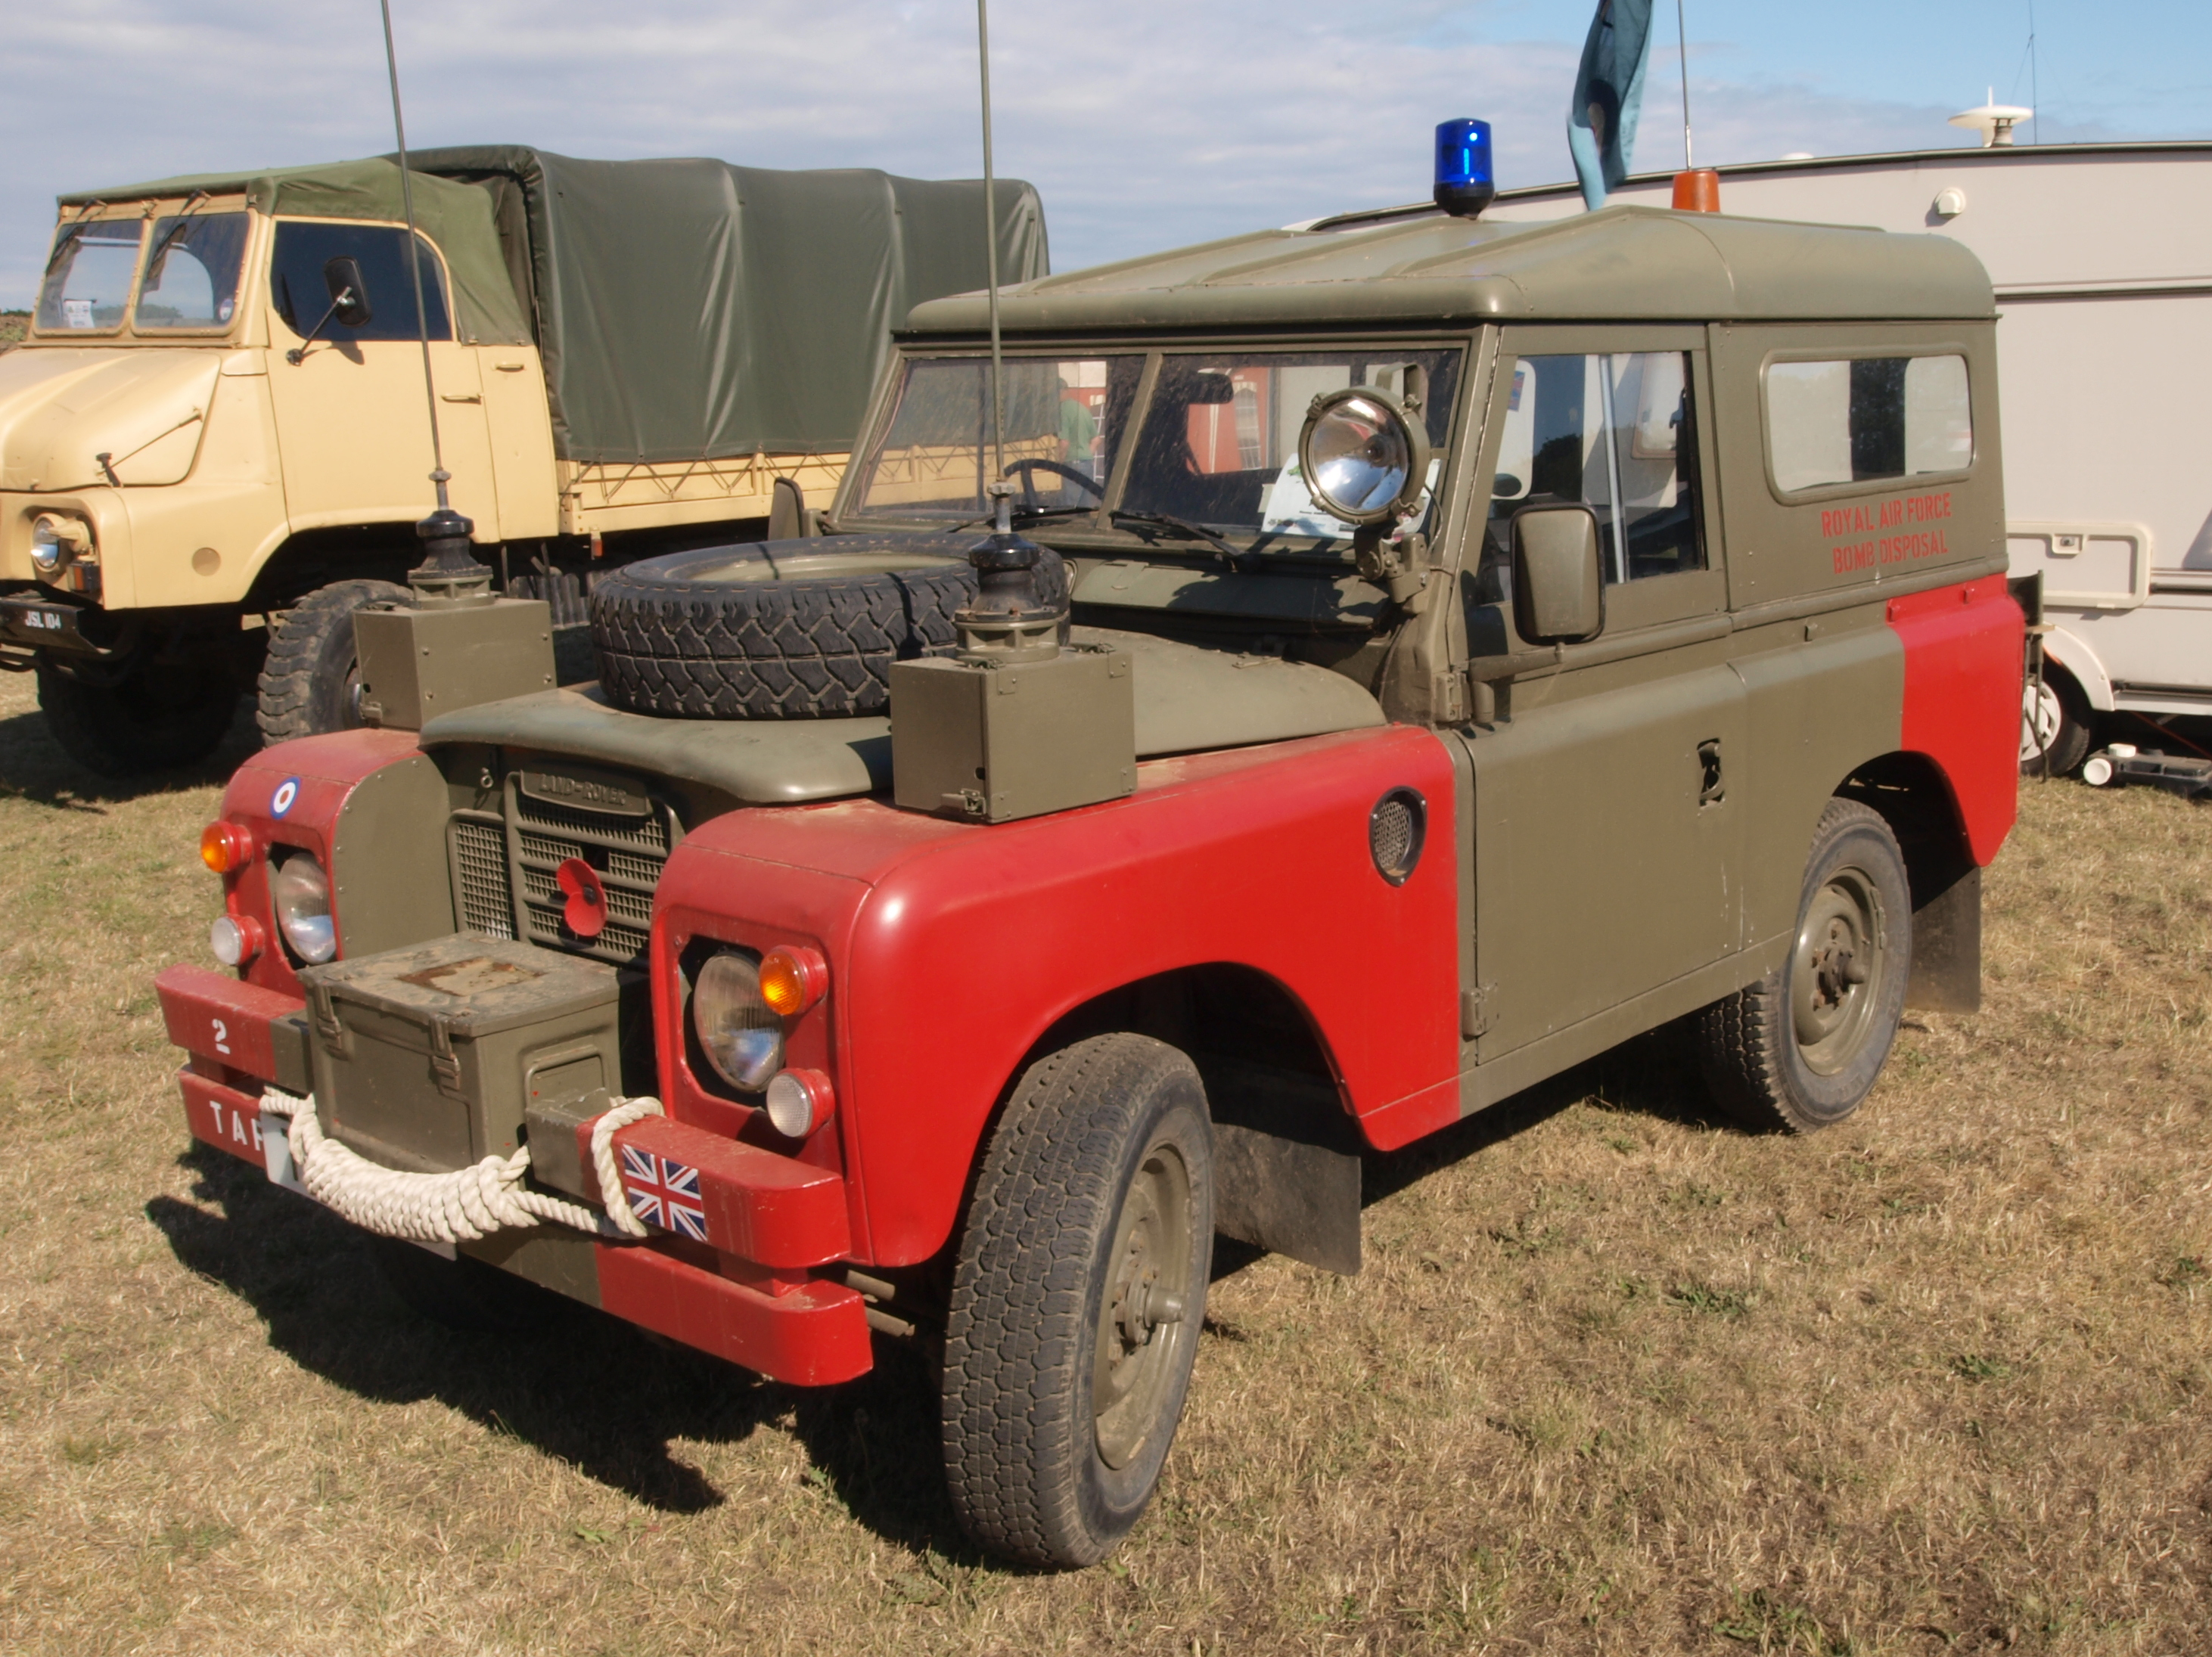 File Land Rover Of The Raf 2 Taf Bomb Disposal Unit Pic2